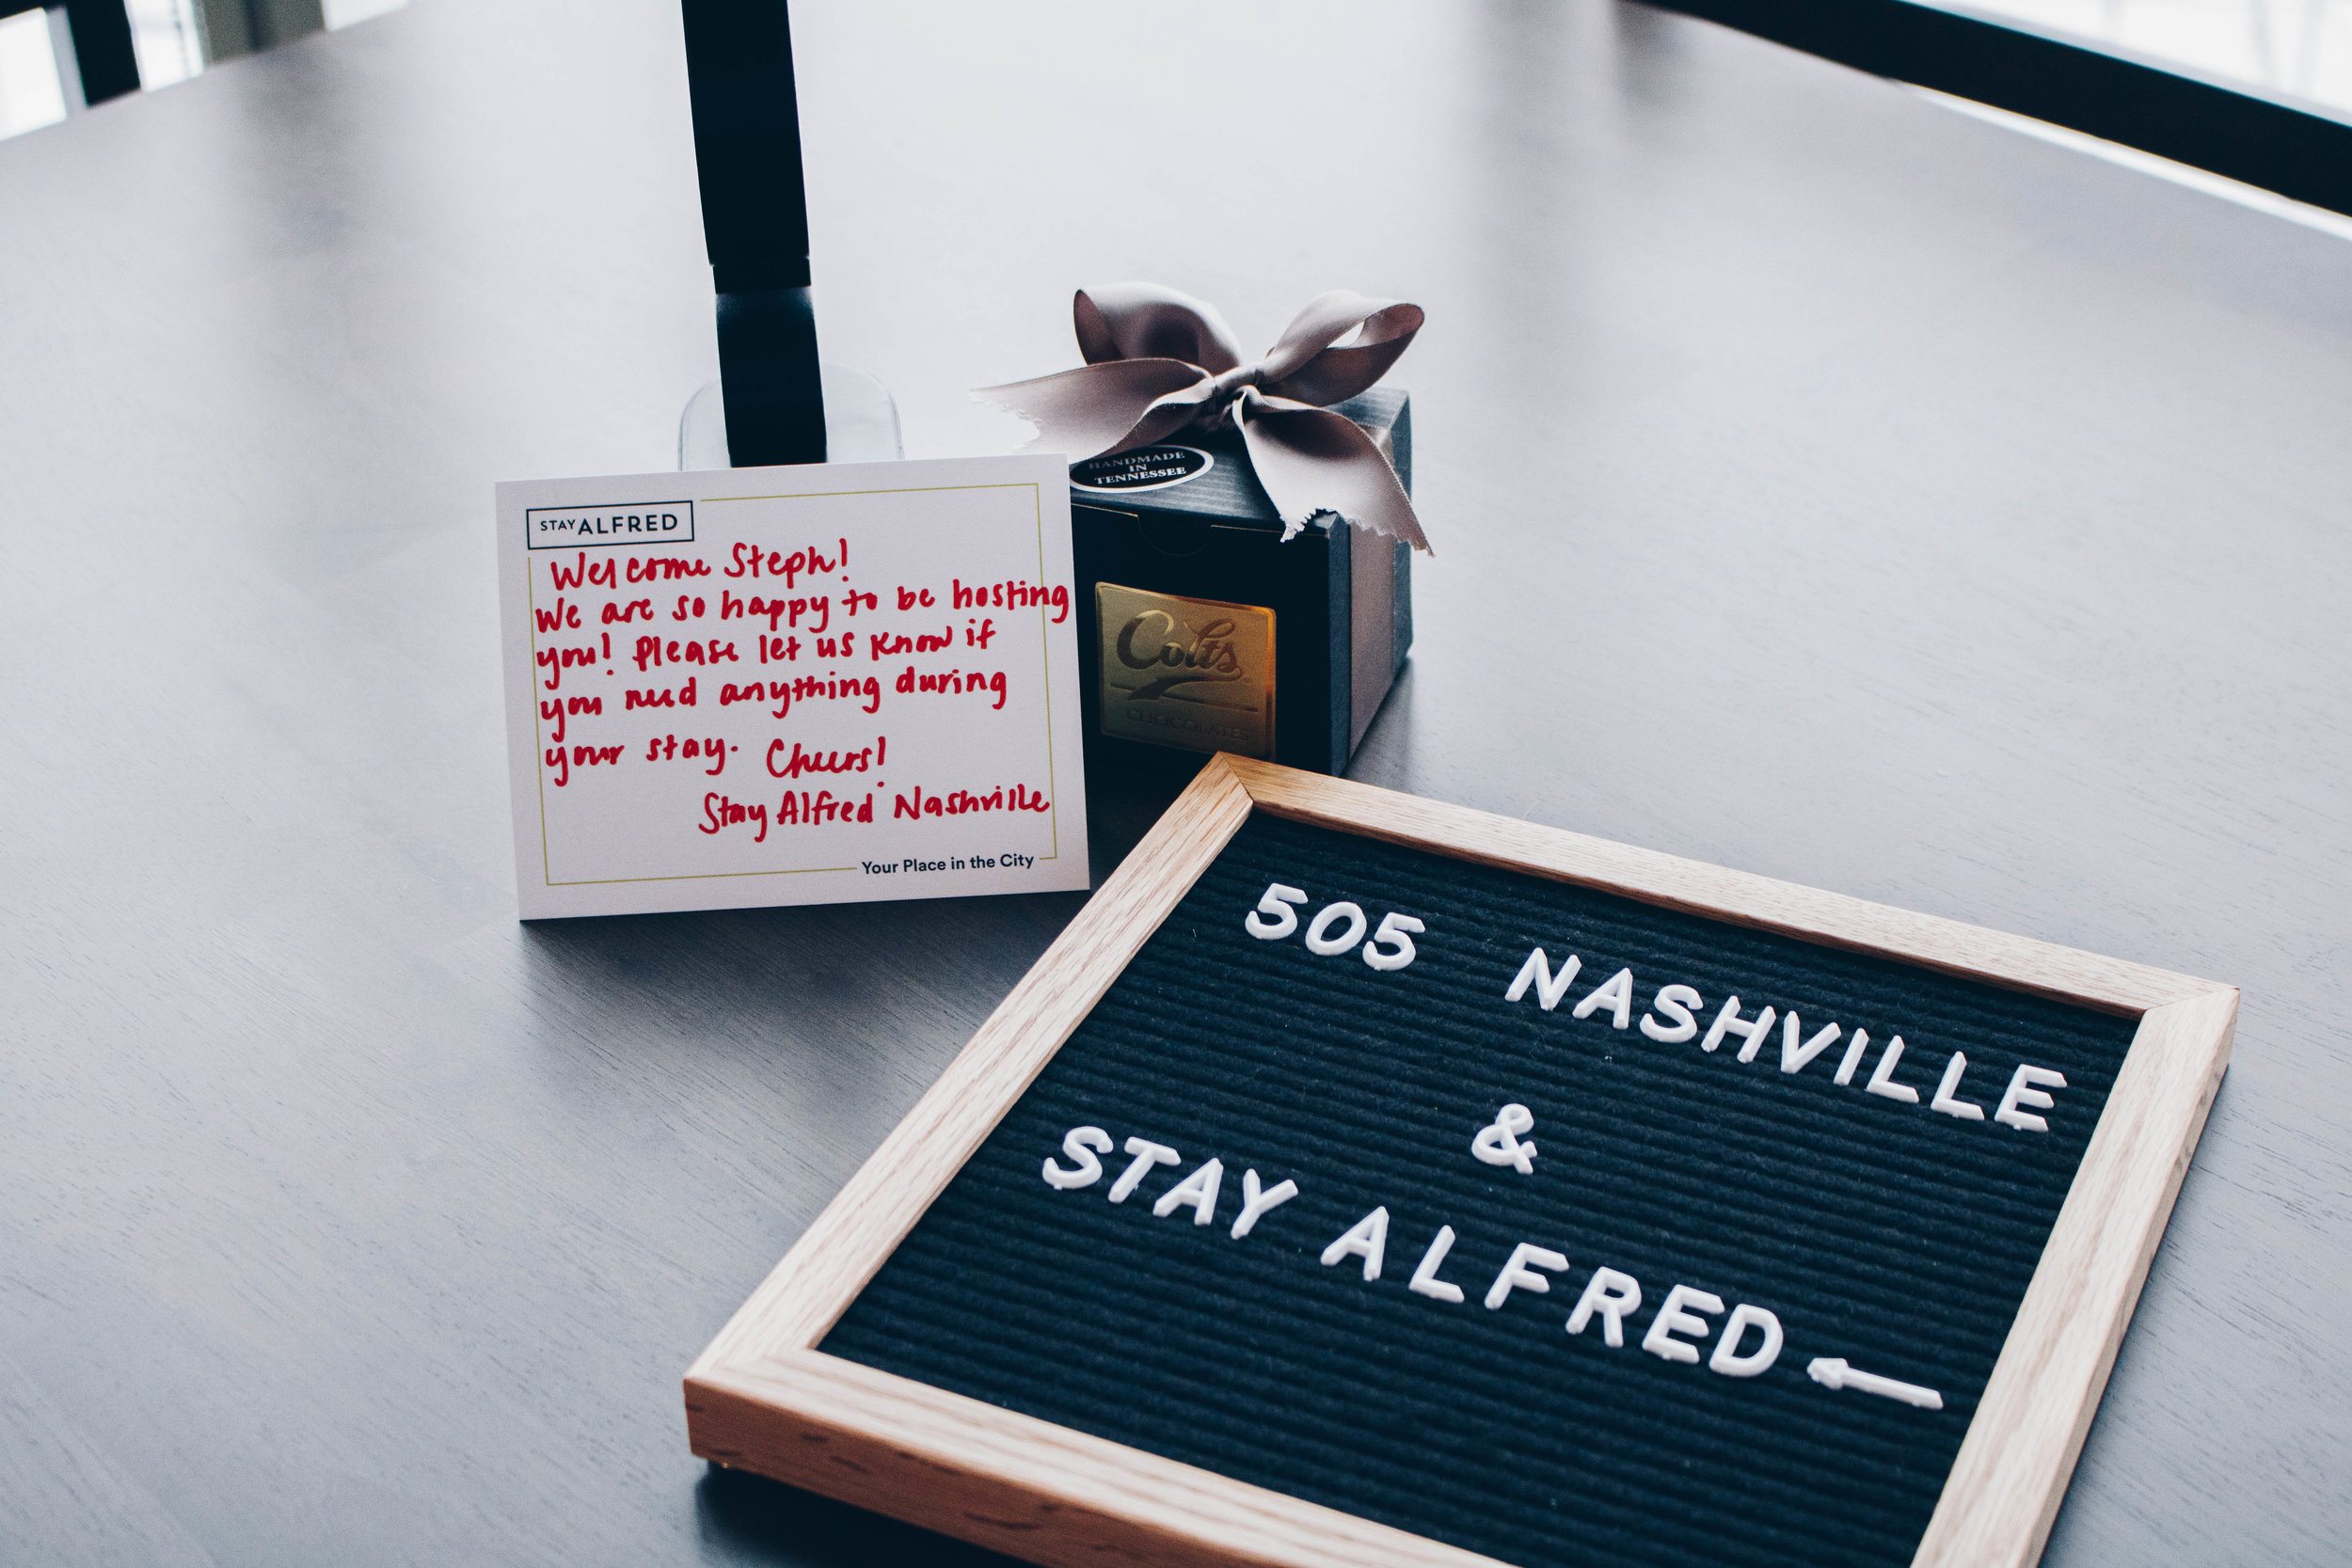 nash-2.jpg - Stay Alfred: 505 Nashville Review by popular Indianapolis blogger Trendy in Indy